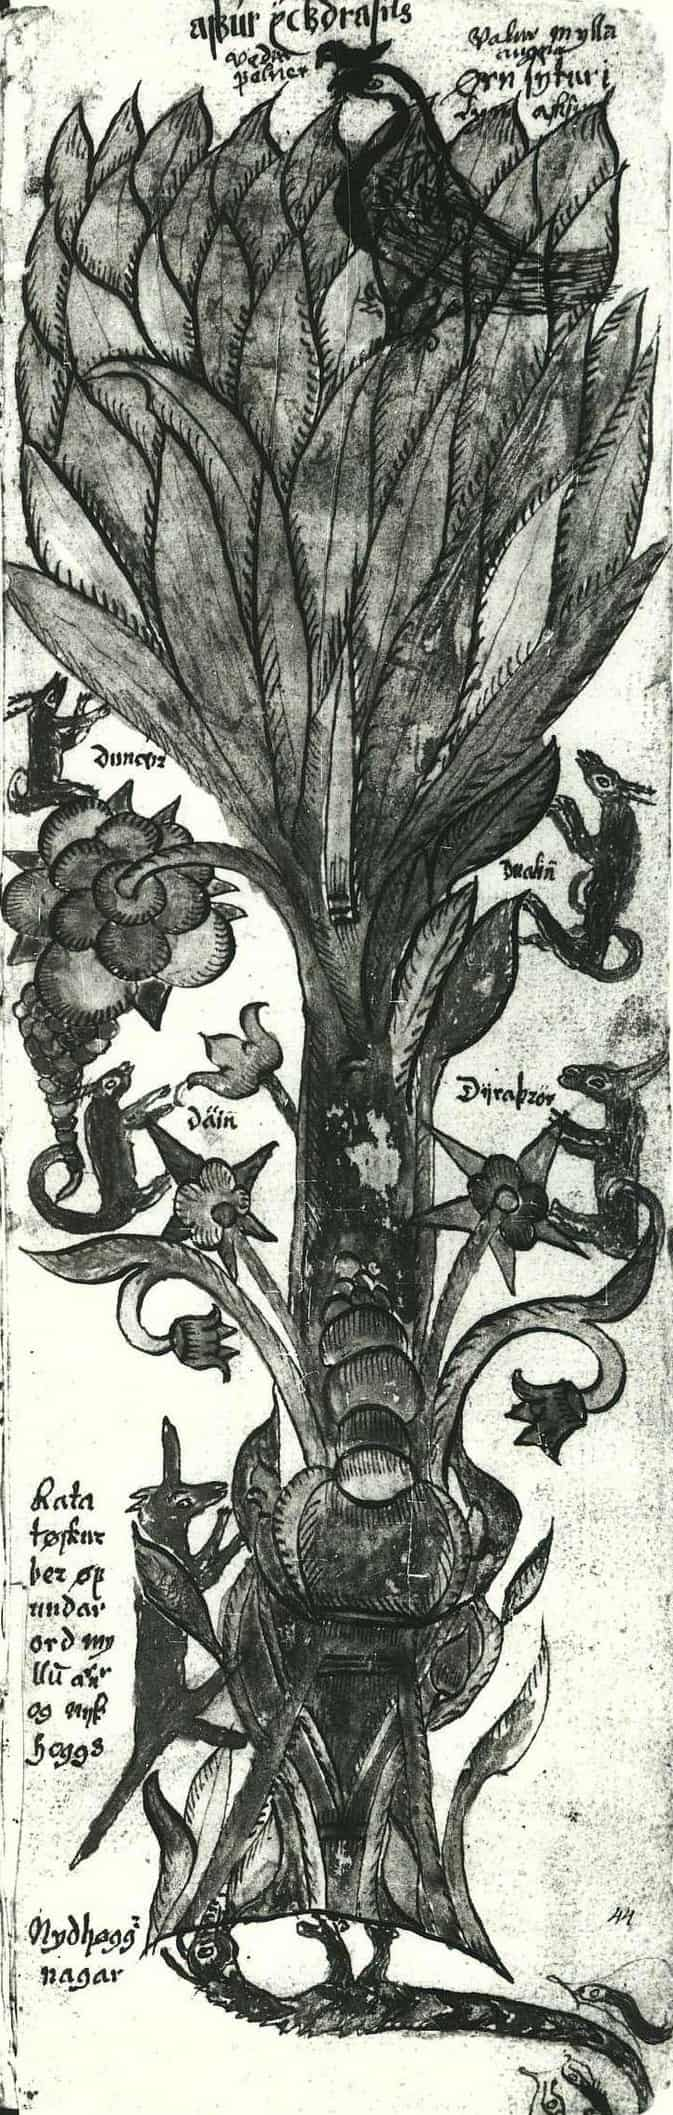 An illustration of the Norse world tree Yggdrasill, from an Icelandic 17th century manuscript.